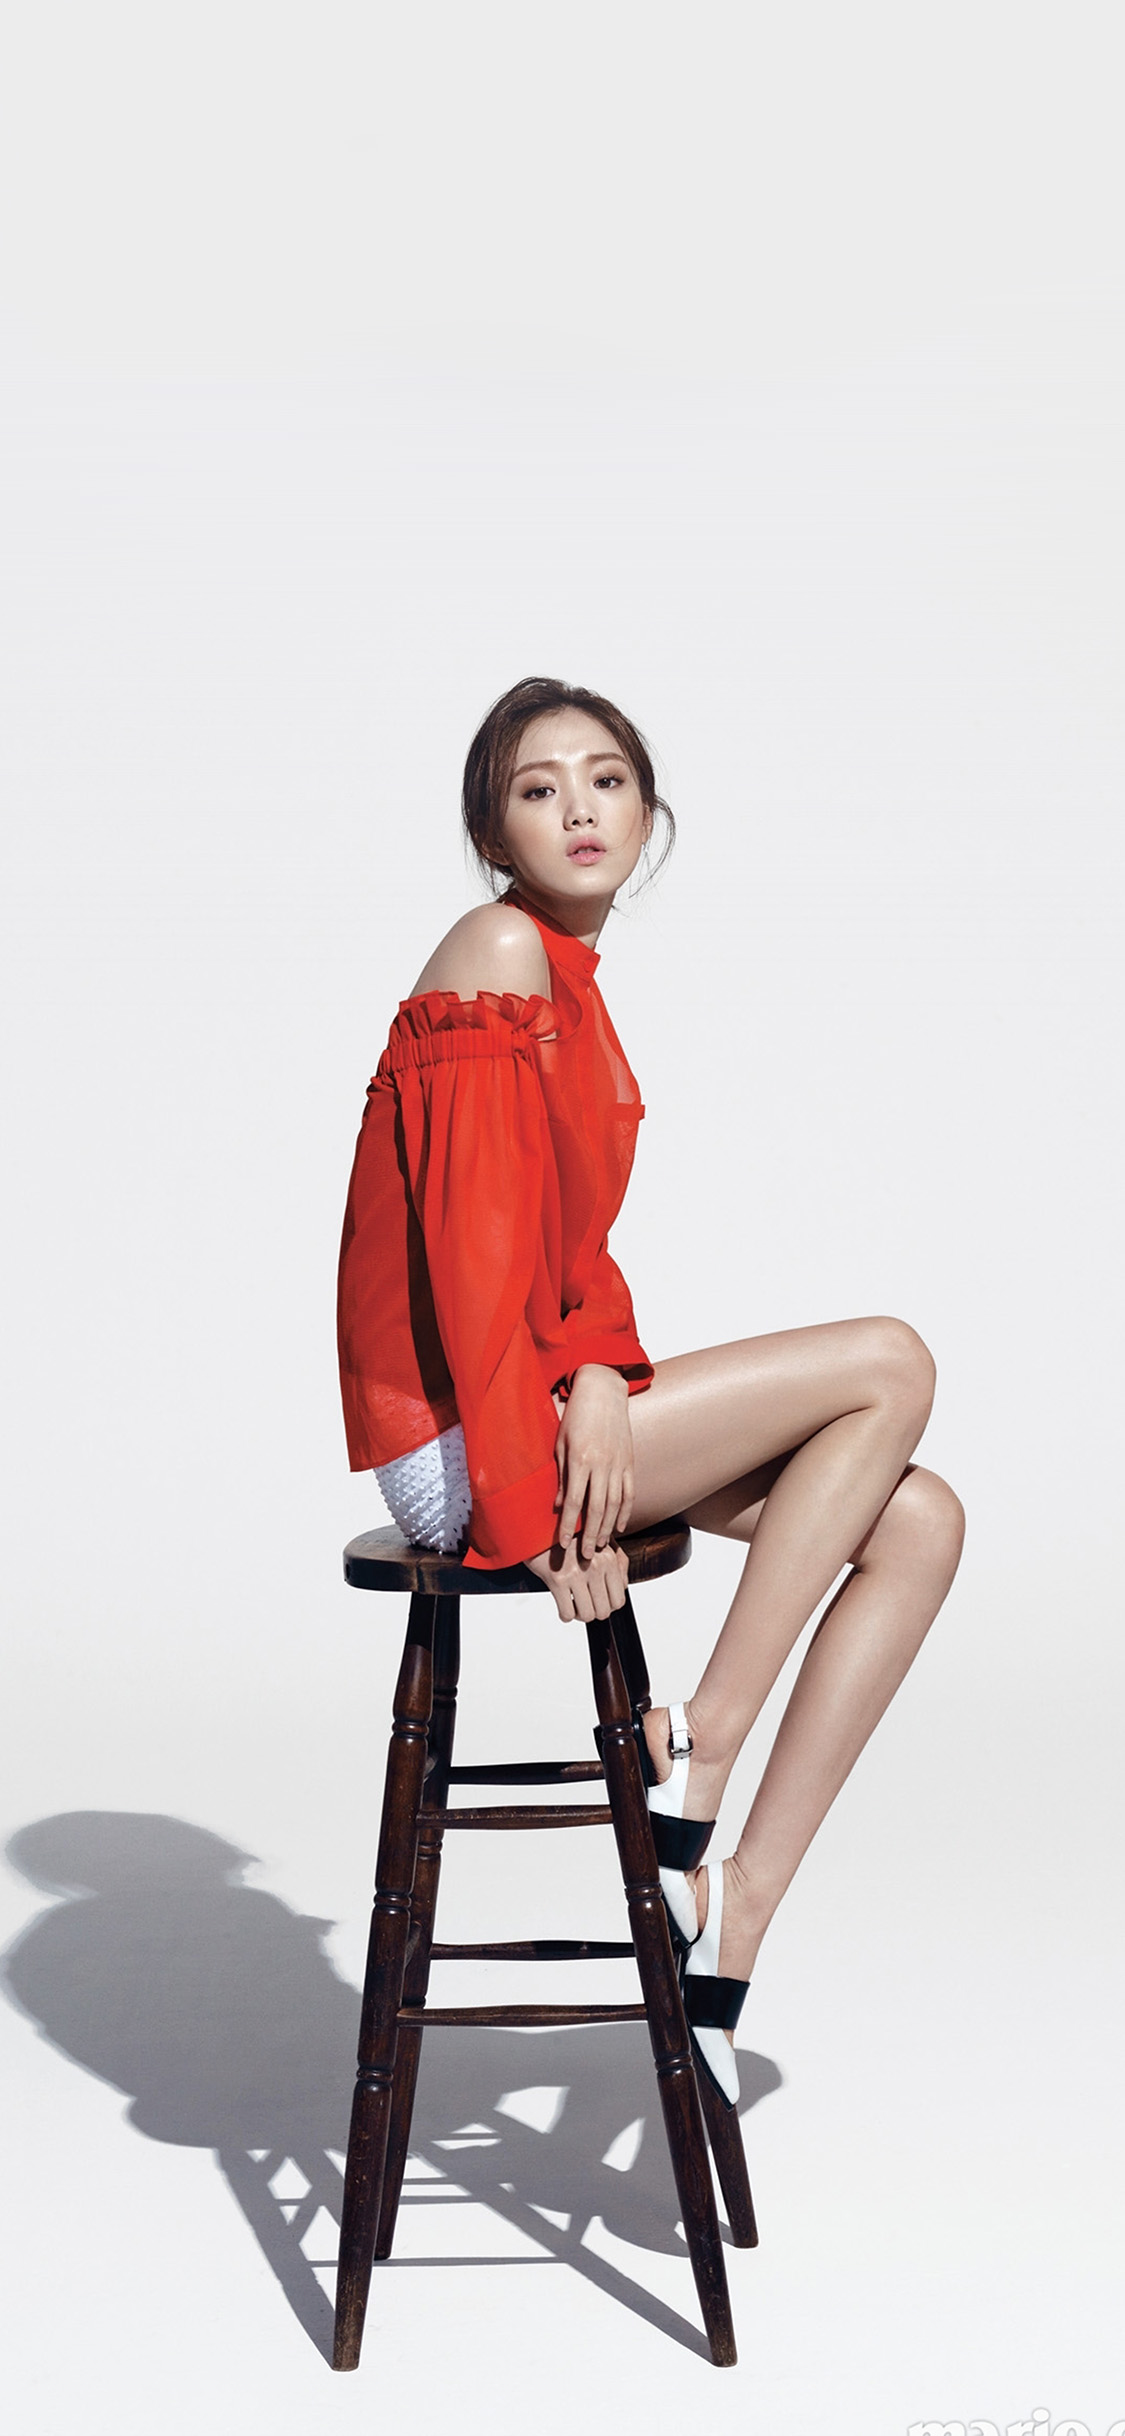 iPhonexpapers.com-Apple-iPhone-wallpaper-hs74-girl-sitting-chair-kpop-red-white